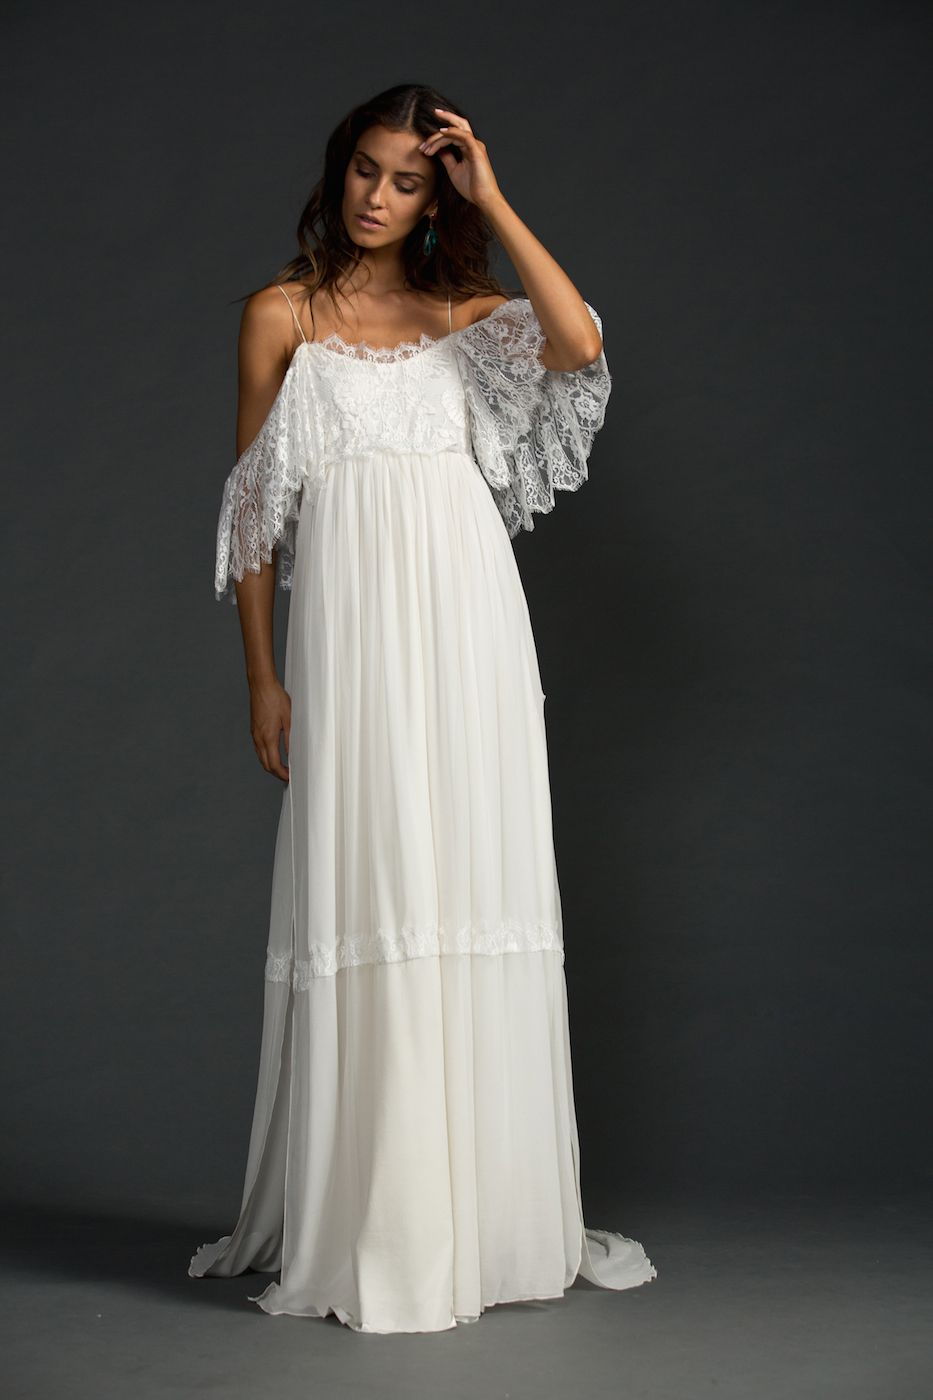 A spectacular dress for the bohemian beauties and the pure romantics